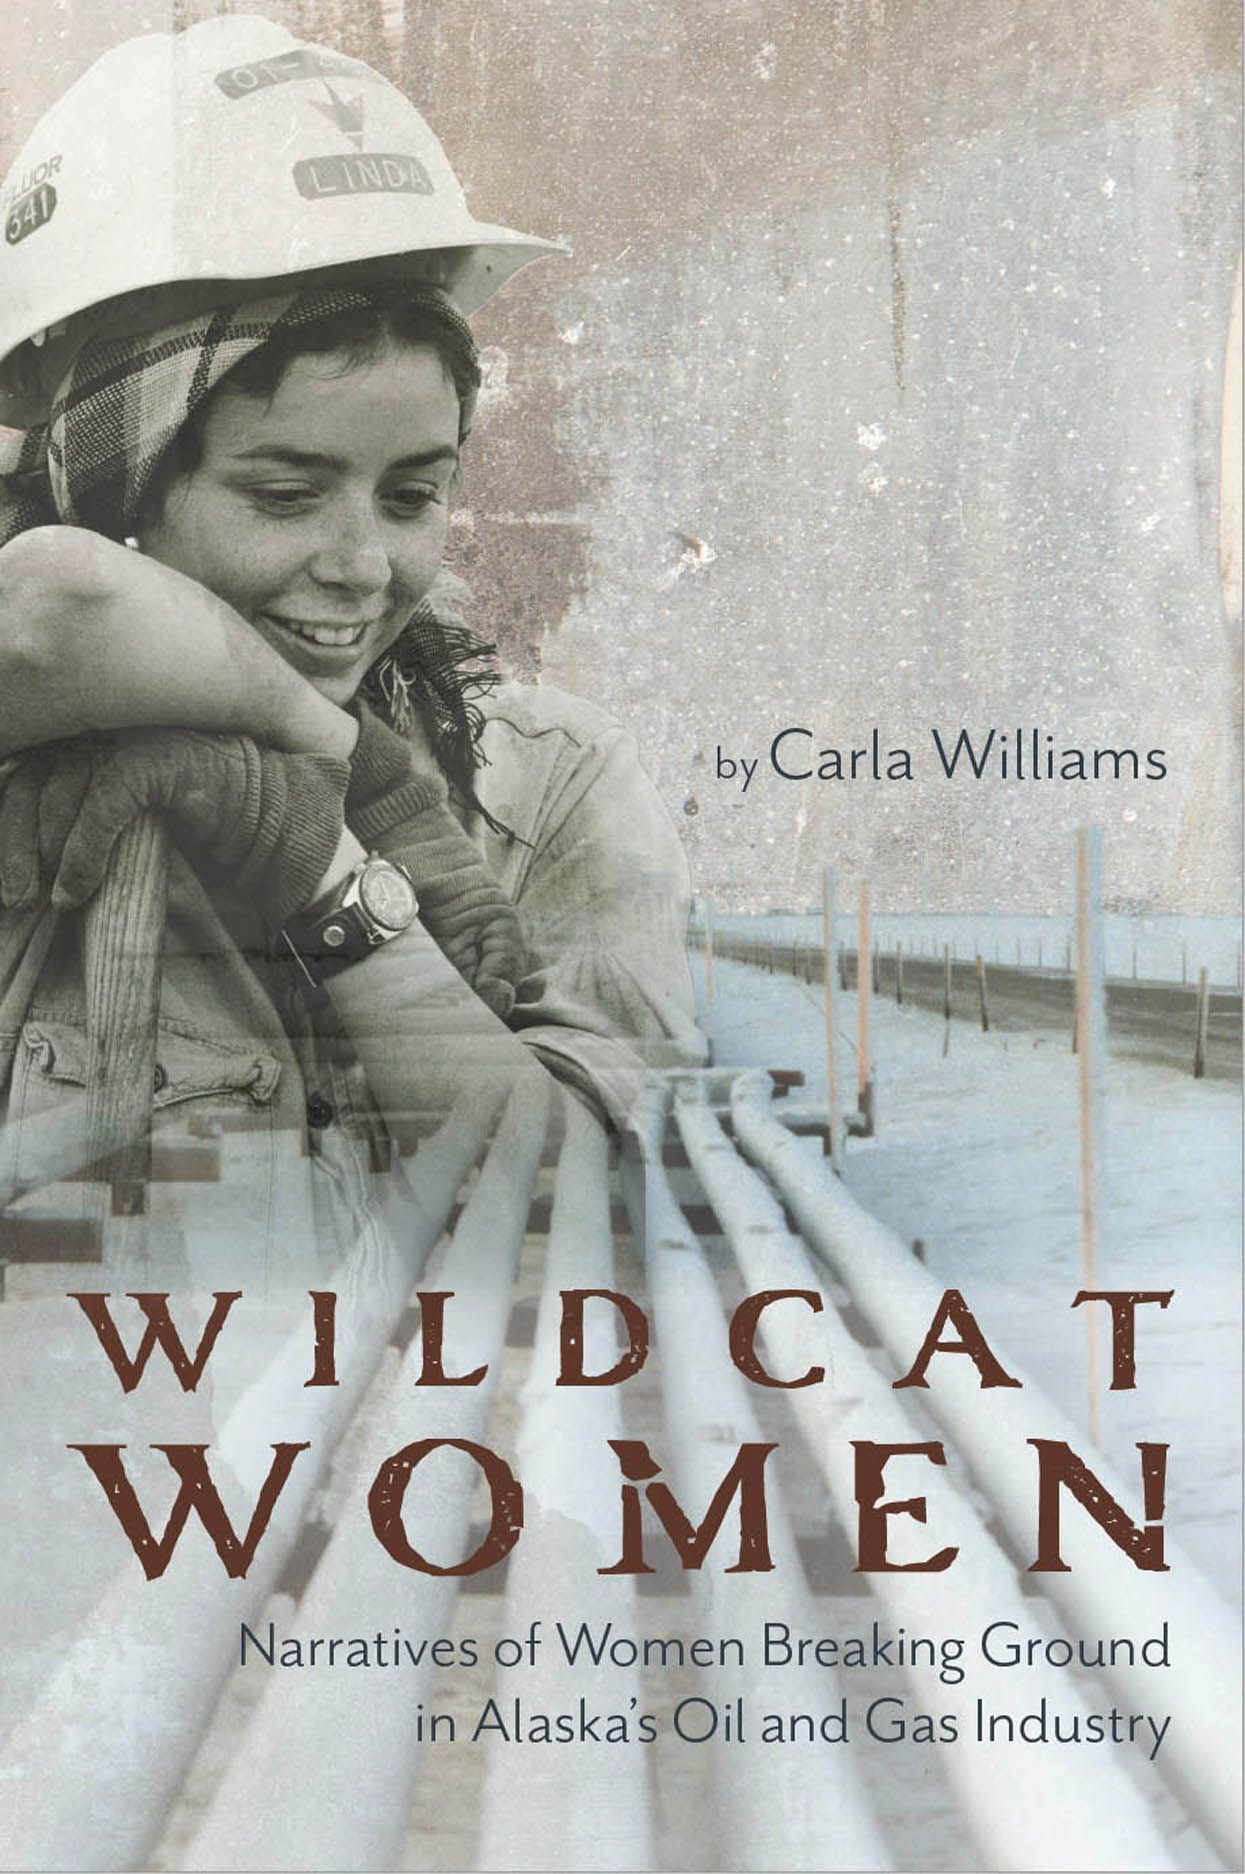 Wildcat Women: Narratives of Women Breaking Ground in Alaska's Oil and Gas Industry